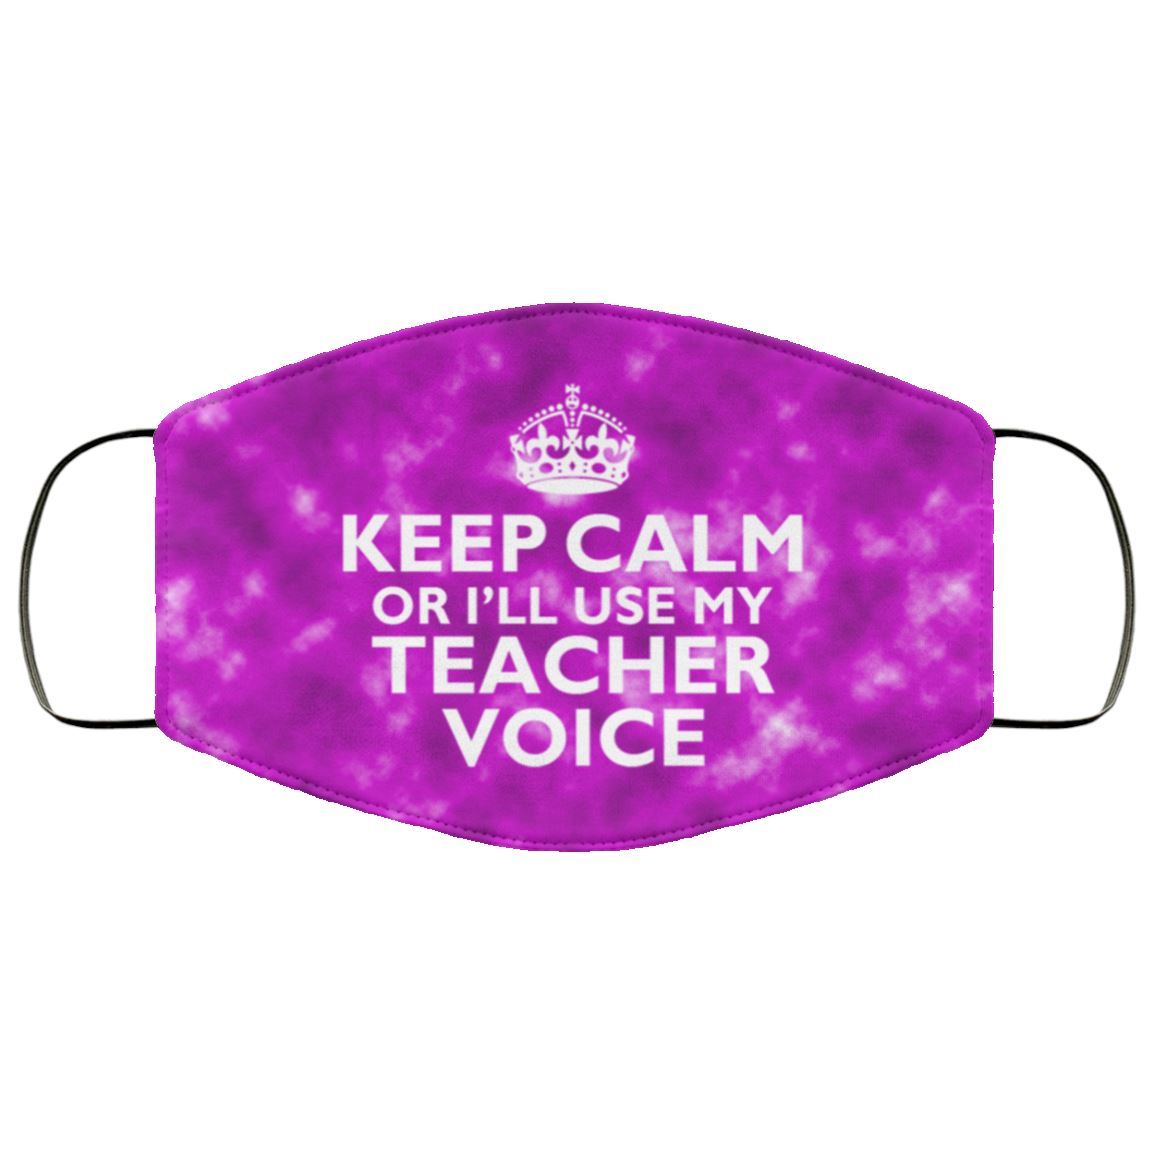 Teacher Voice Face Cover